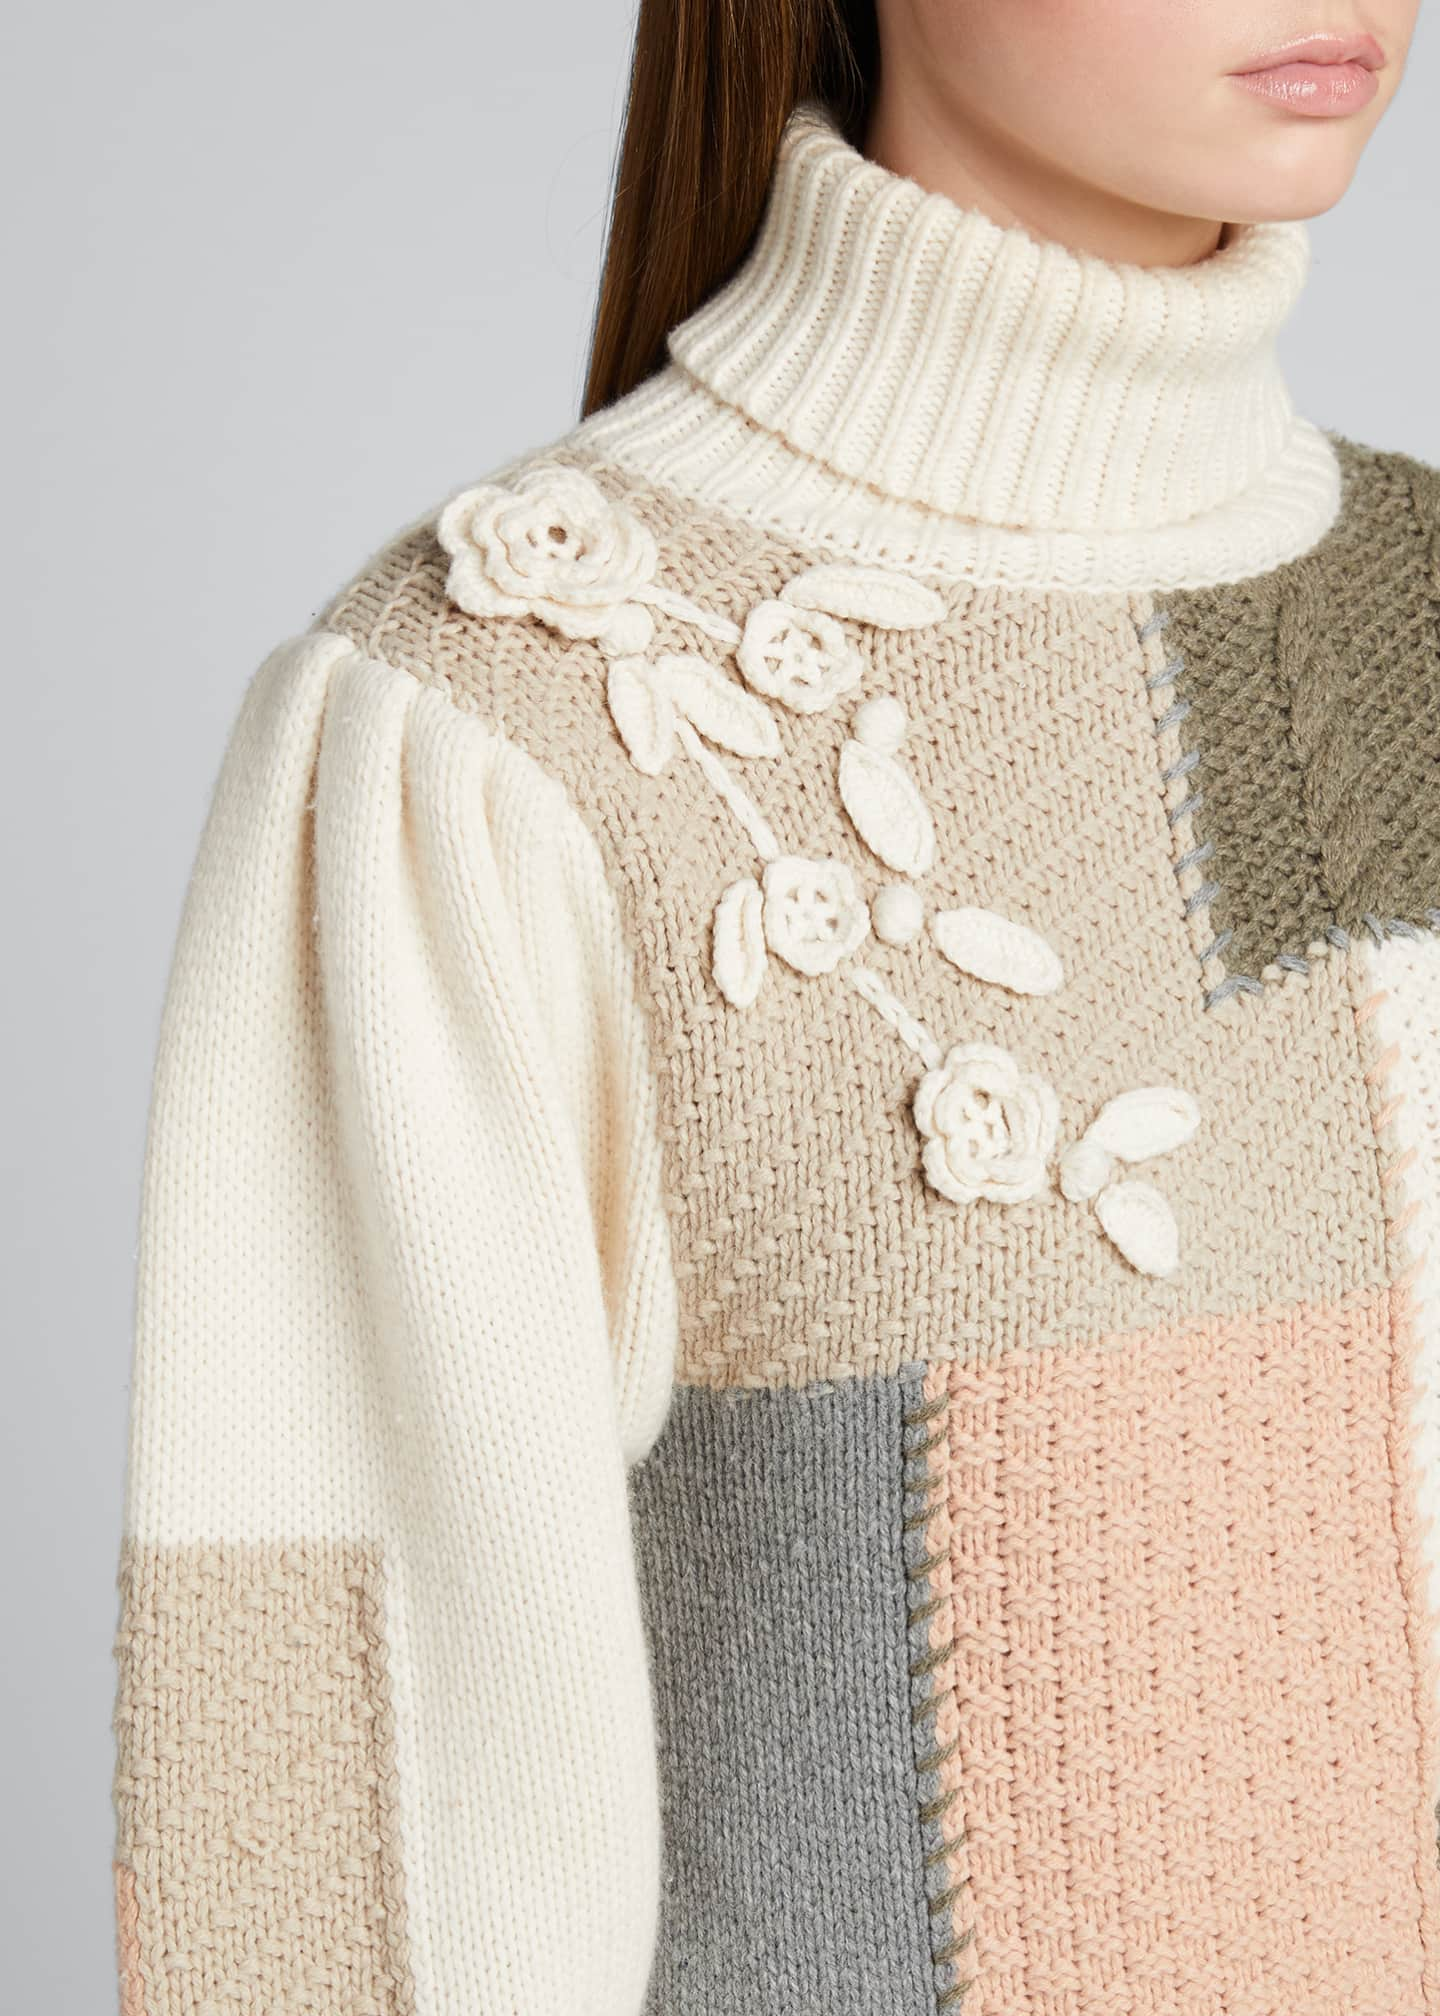 Image 4 of 5: Allan Patchwork Floral Applique Knit Sweater